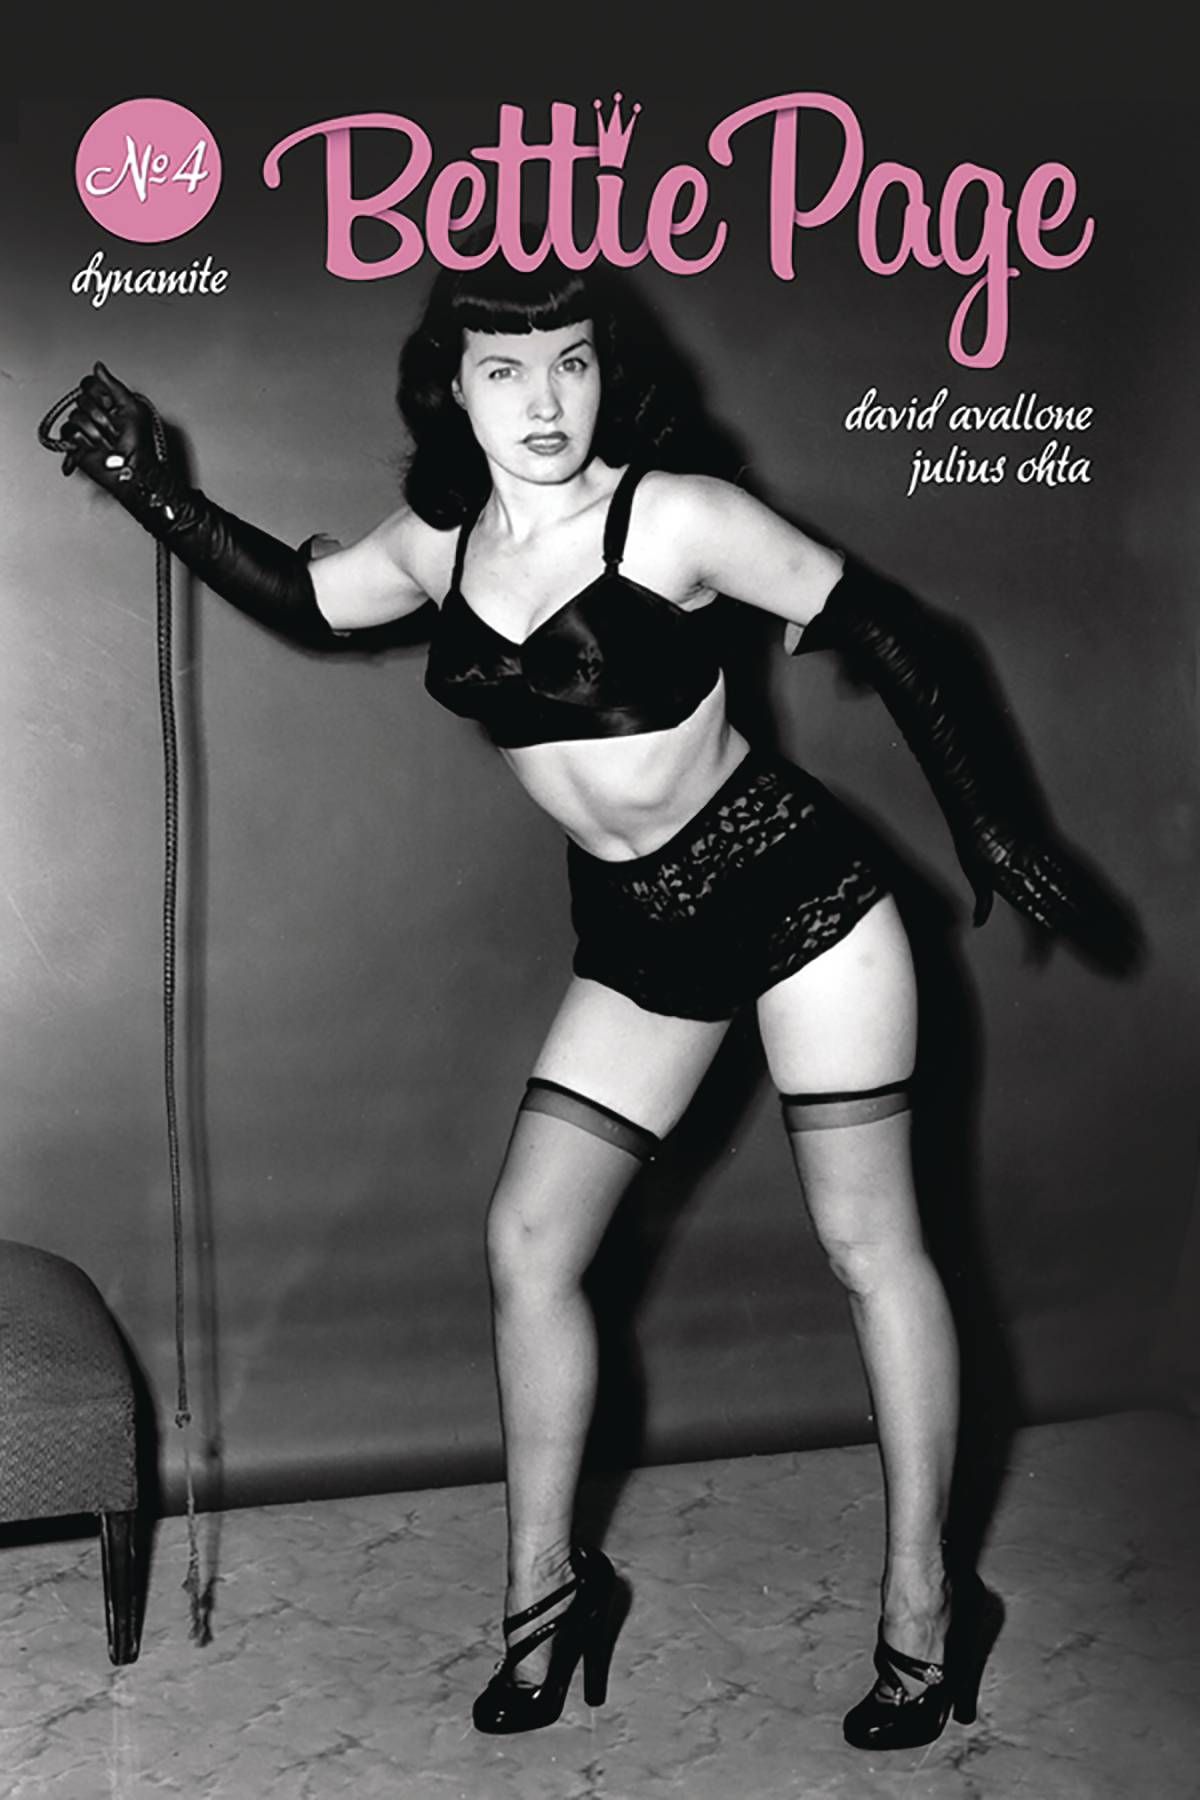 BETTIE PAGE 4 CVR E PHOTO.jpg